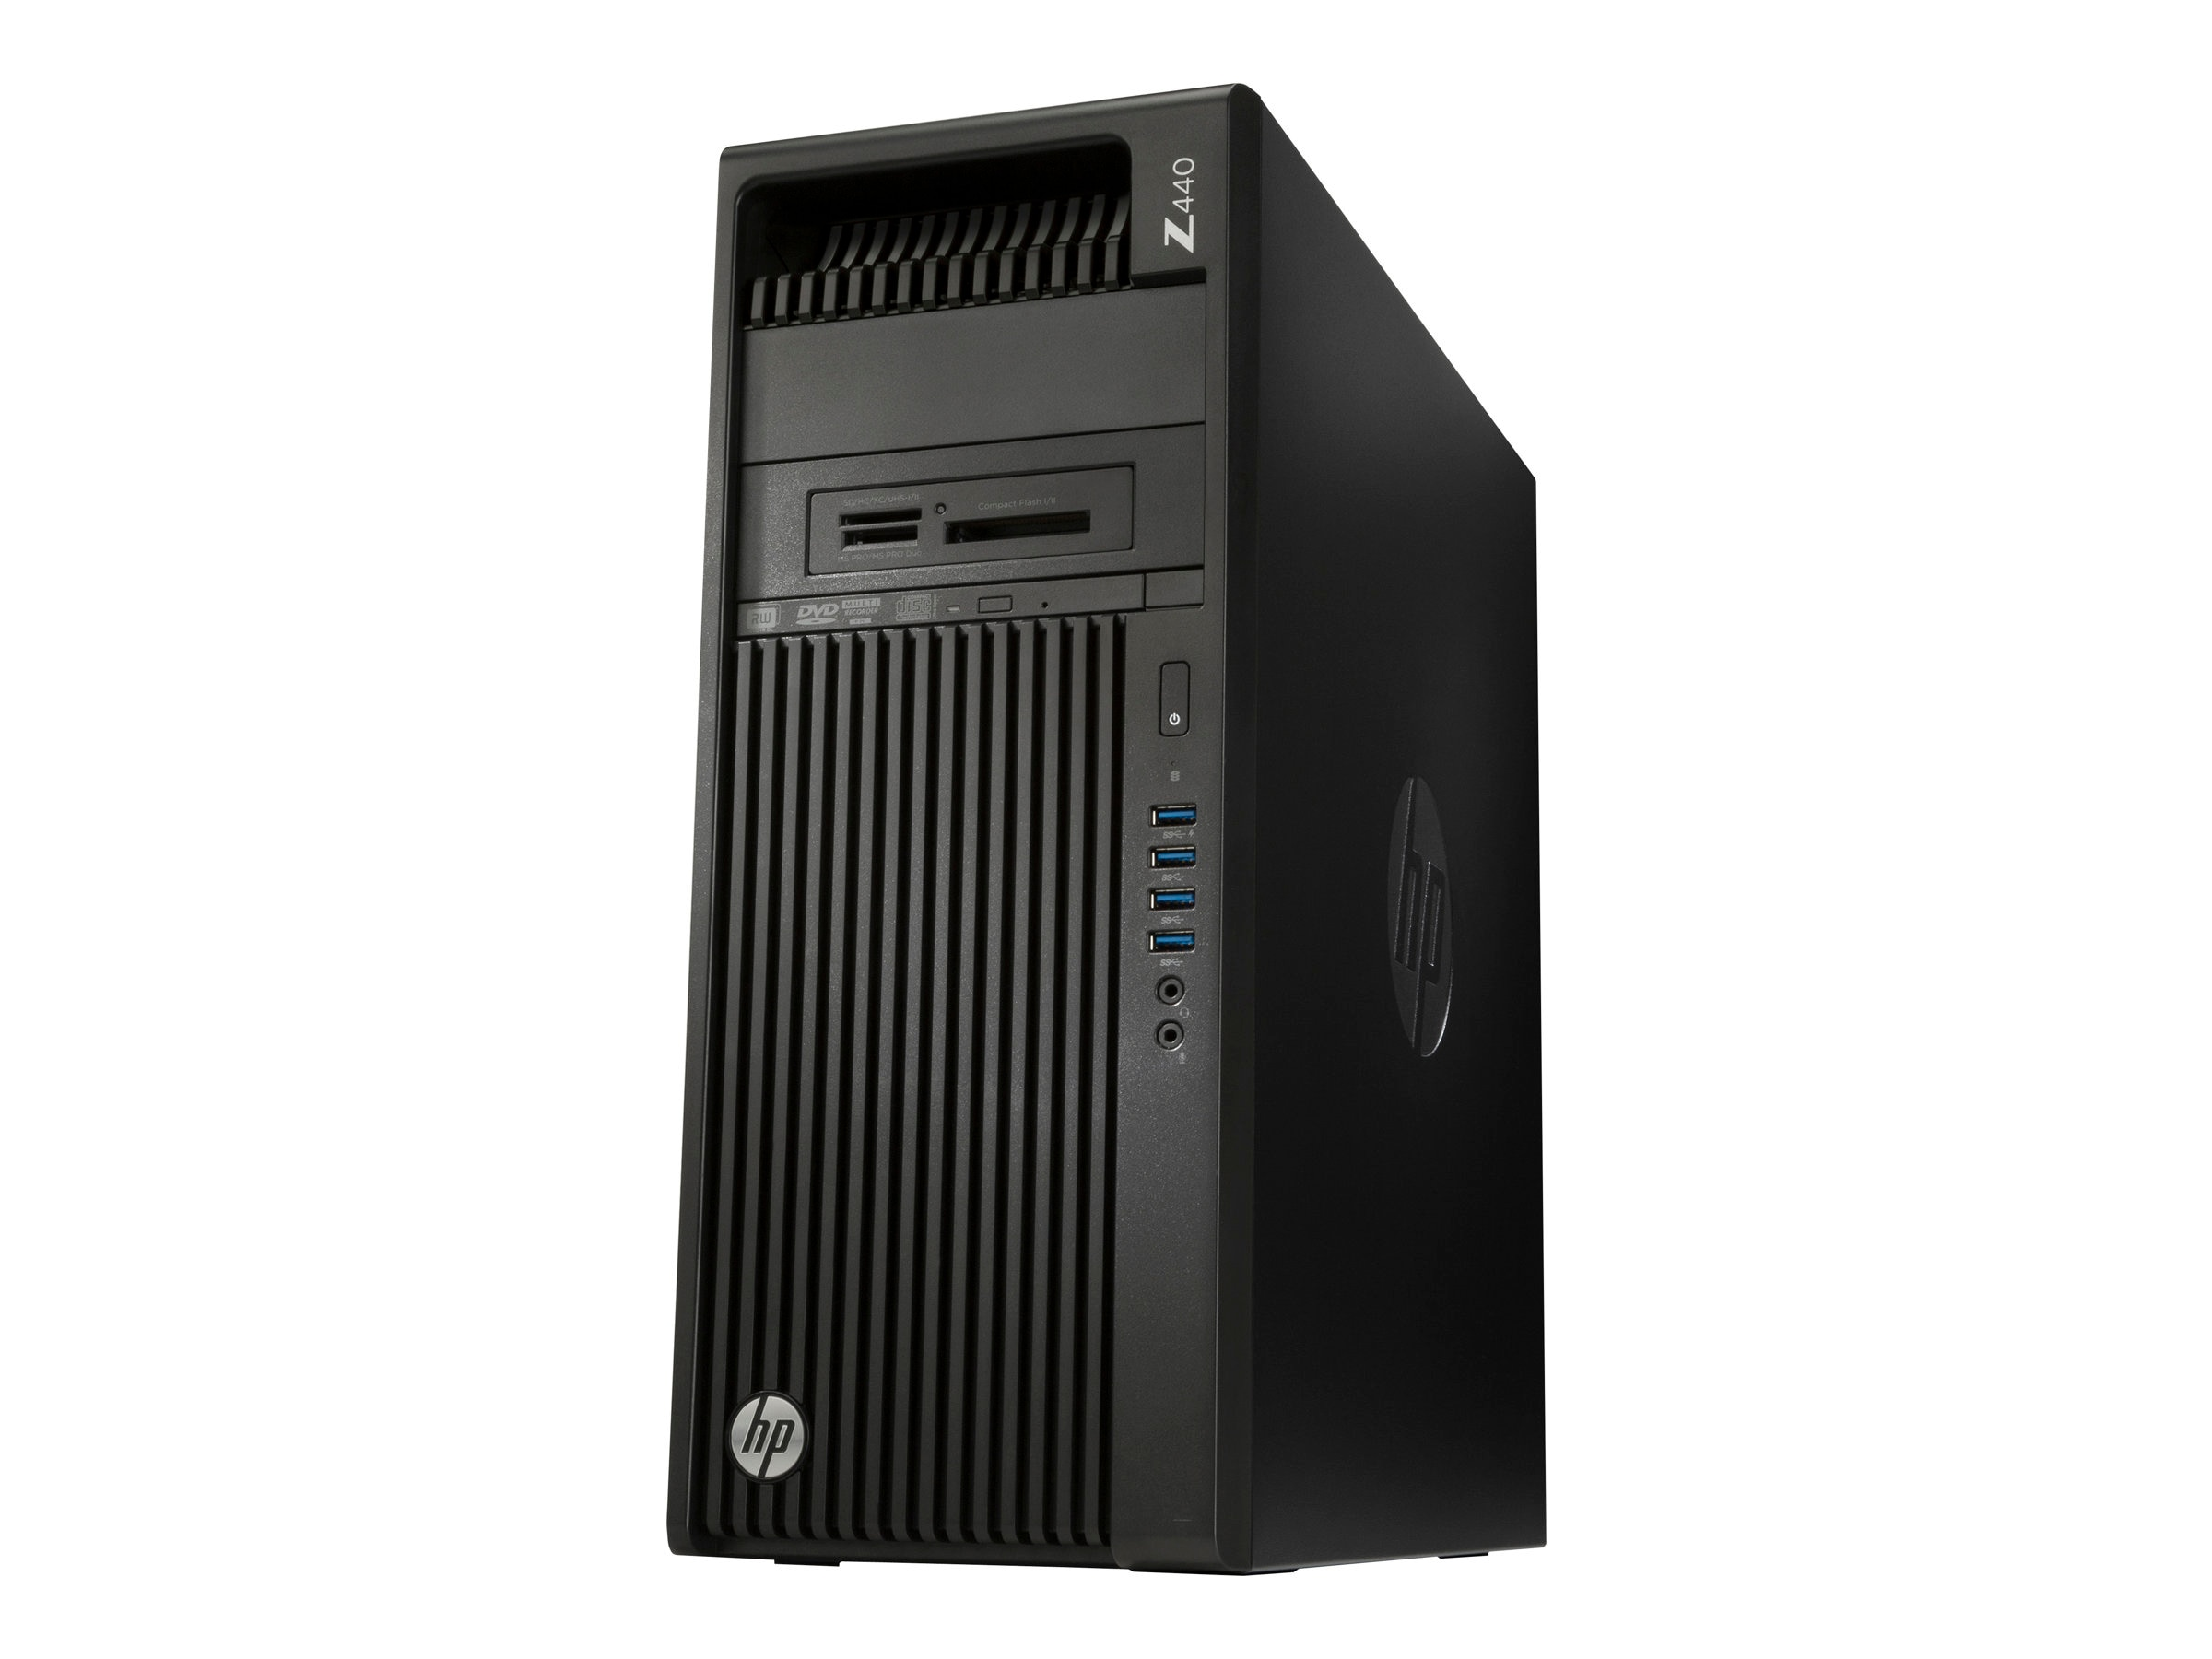 HP Z440 3.7GHz Xeon Microsoft Windows 7 Professional 64-bit Edition   Windows 10 Pro